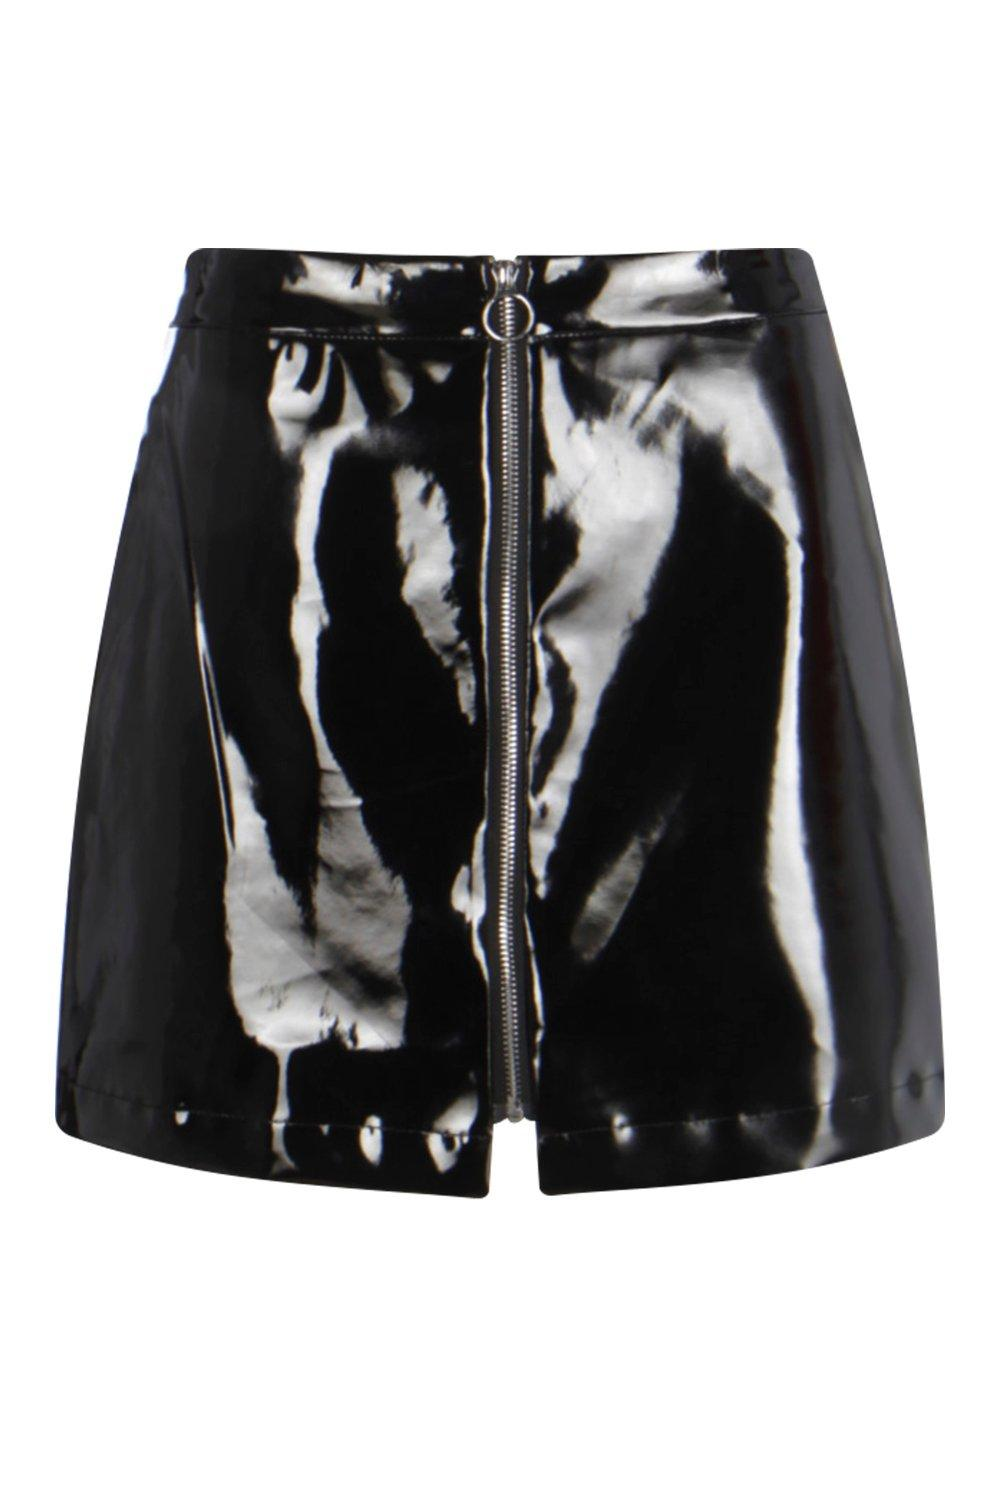 Vinyl mini skirt, boohoo.com $35